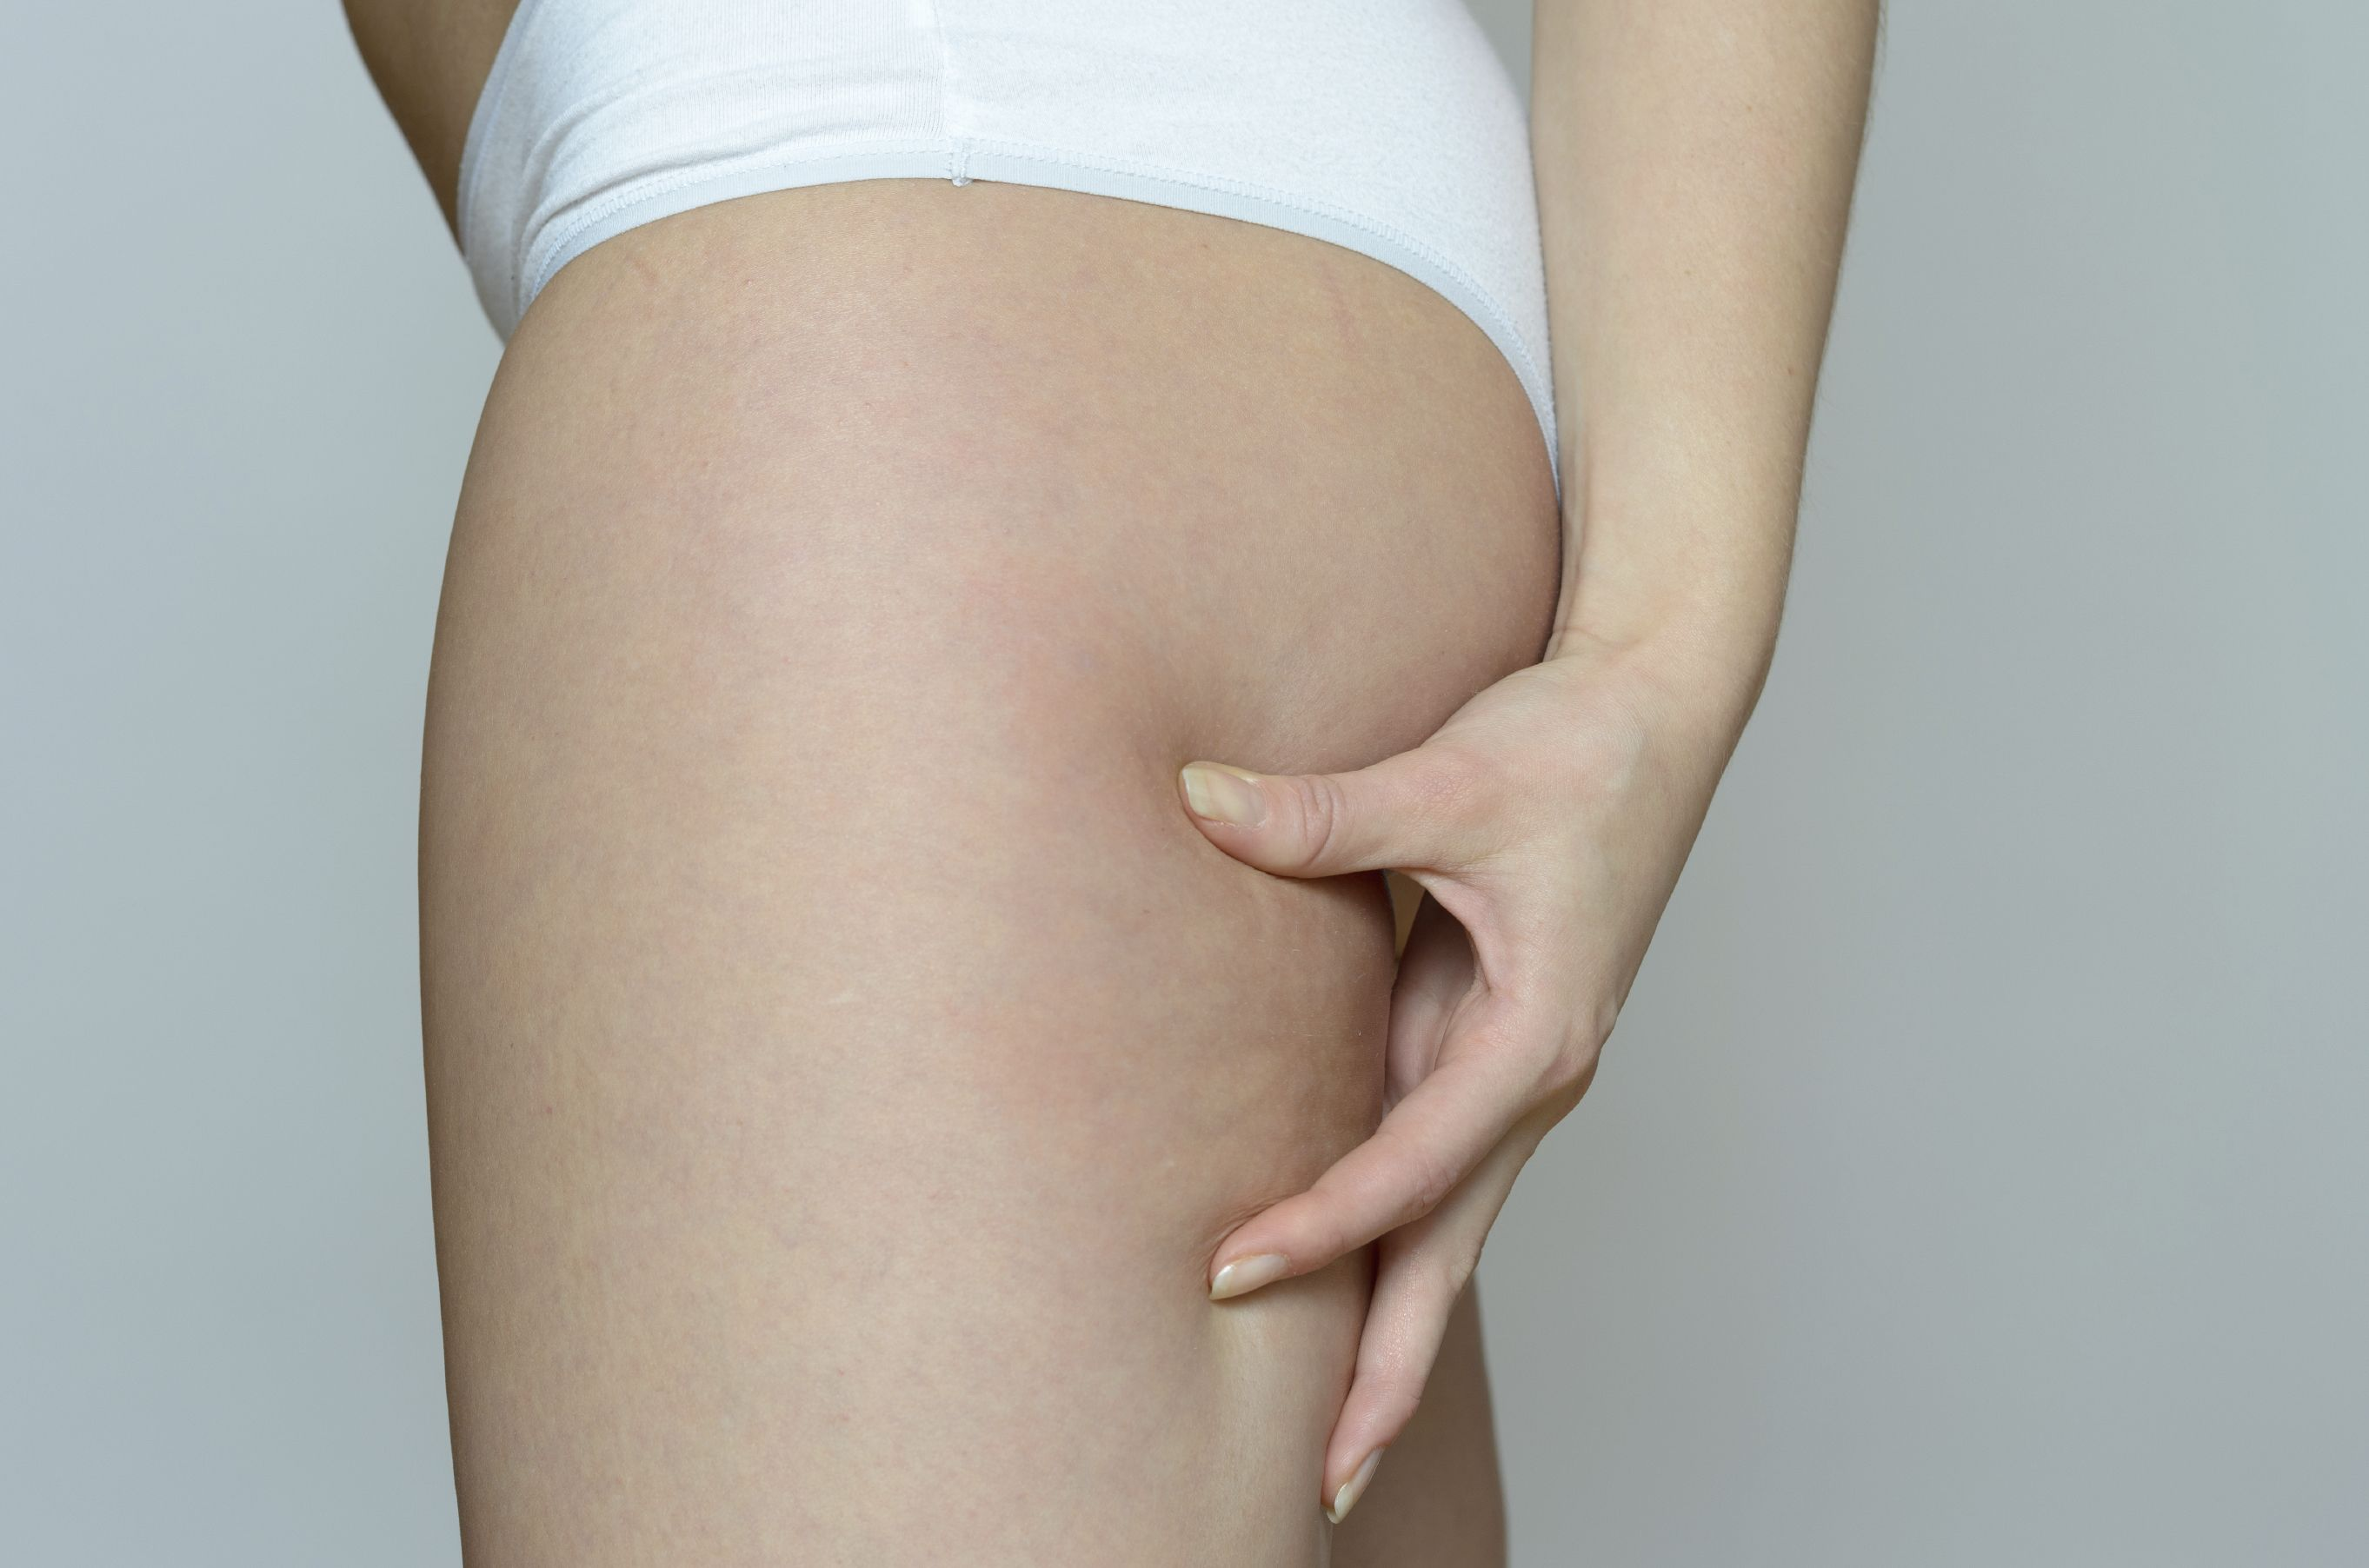 A woman examining her own thighs